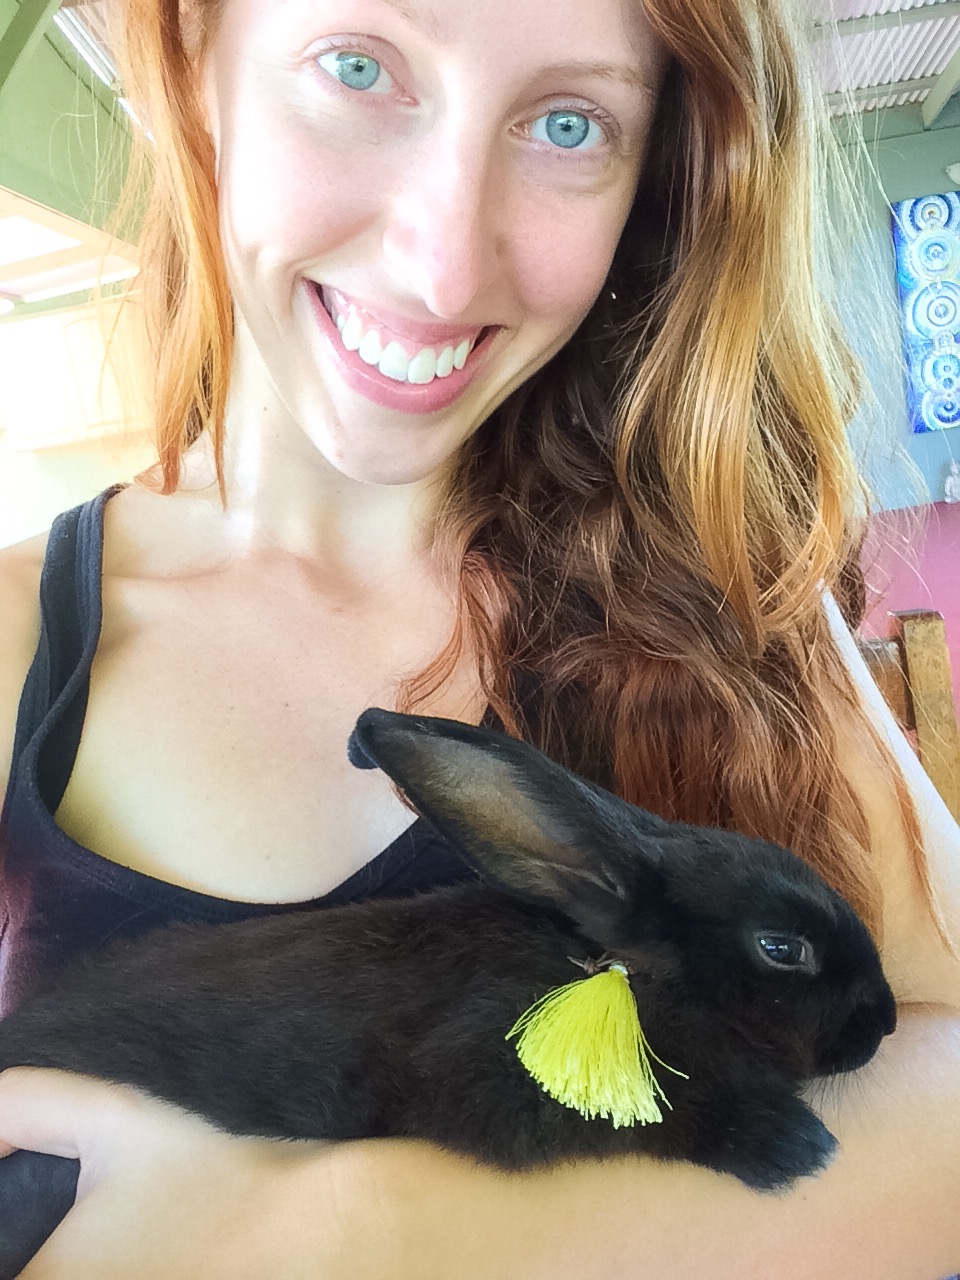 New experiences: befriending a dwarf bunny and having clean, clear, makeup-free skin while traveling :)